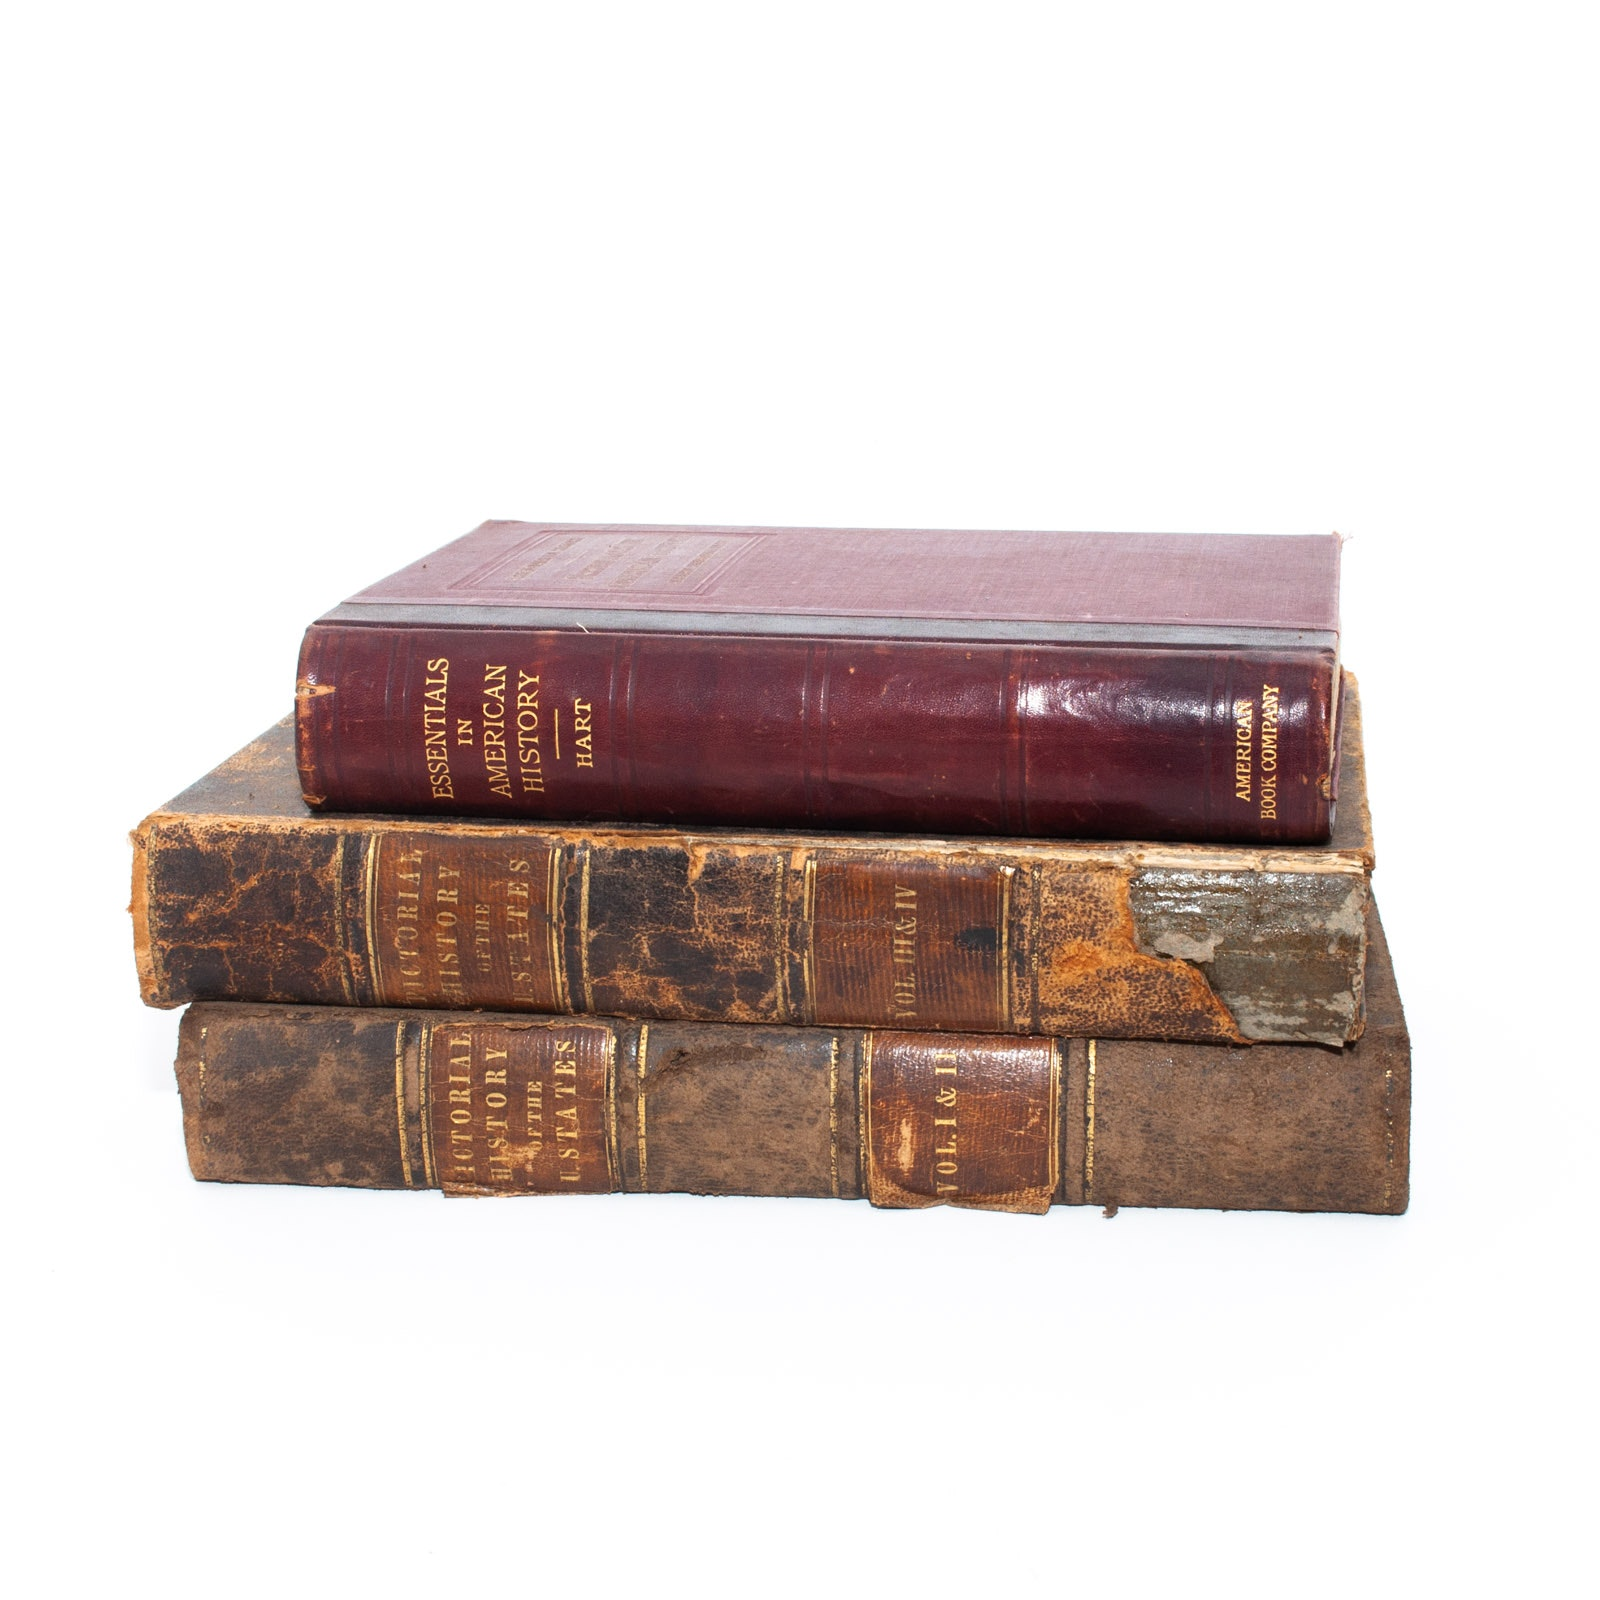 Set of Antique American History Books